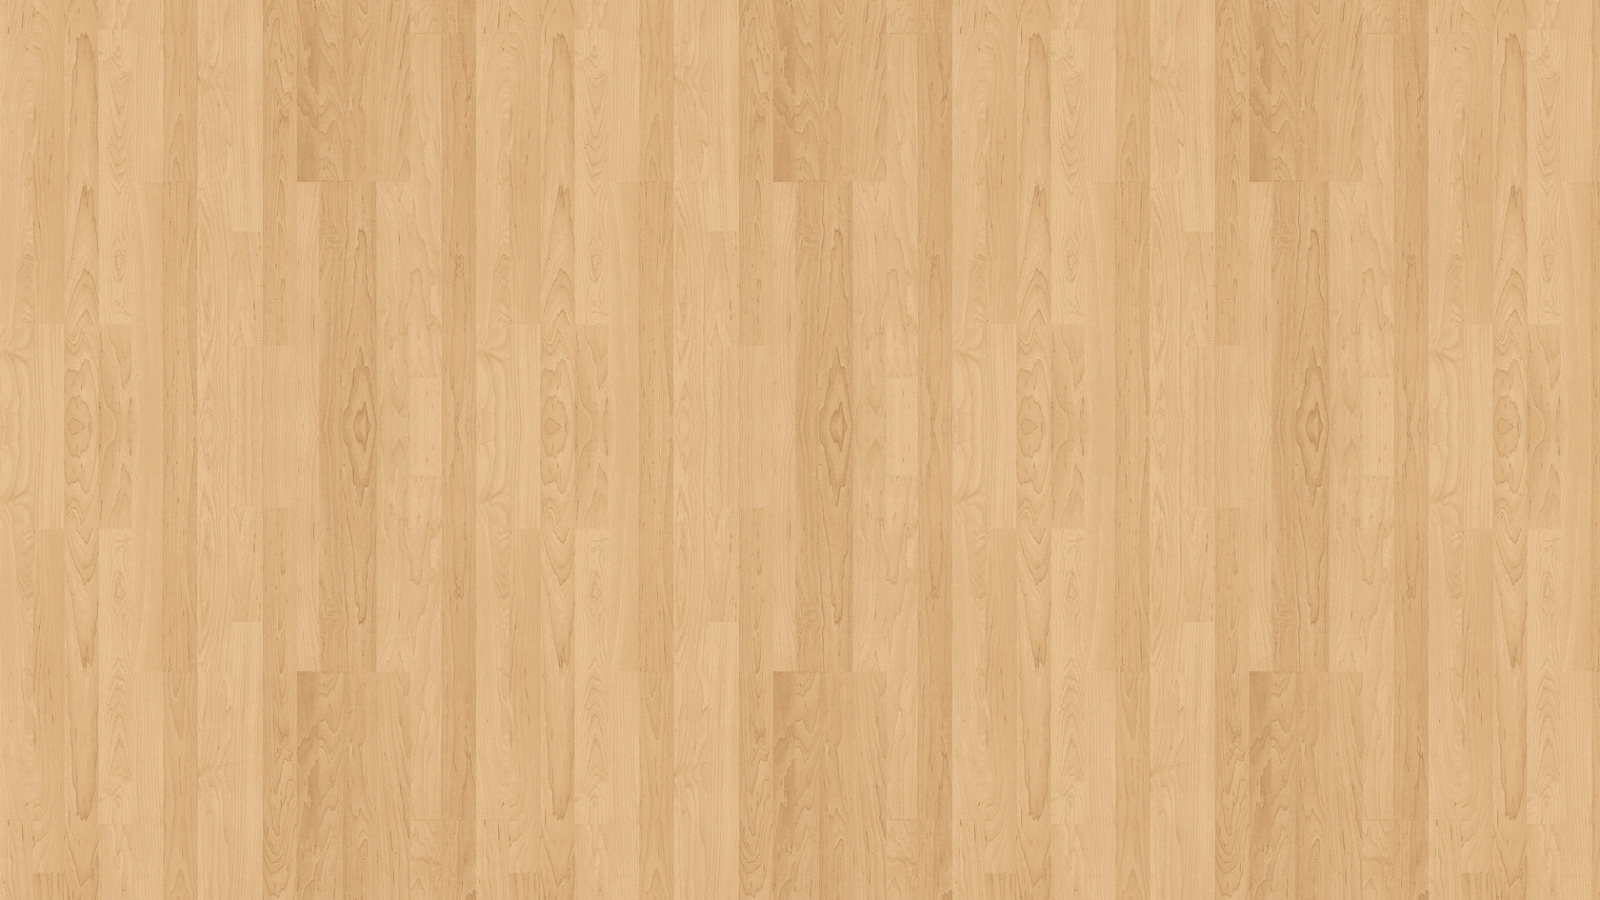 Textura de pared de madera hd 1600x900 imagenes for Textura de pared